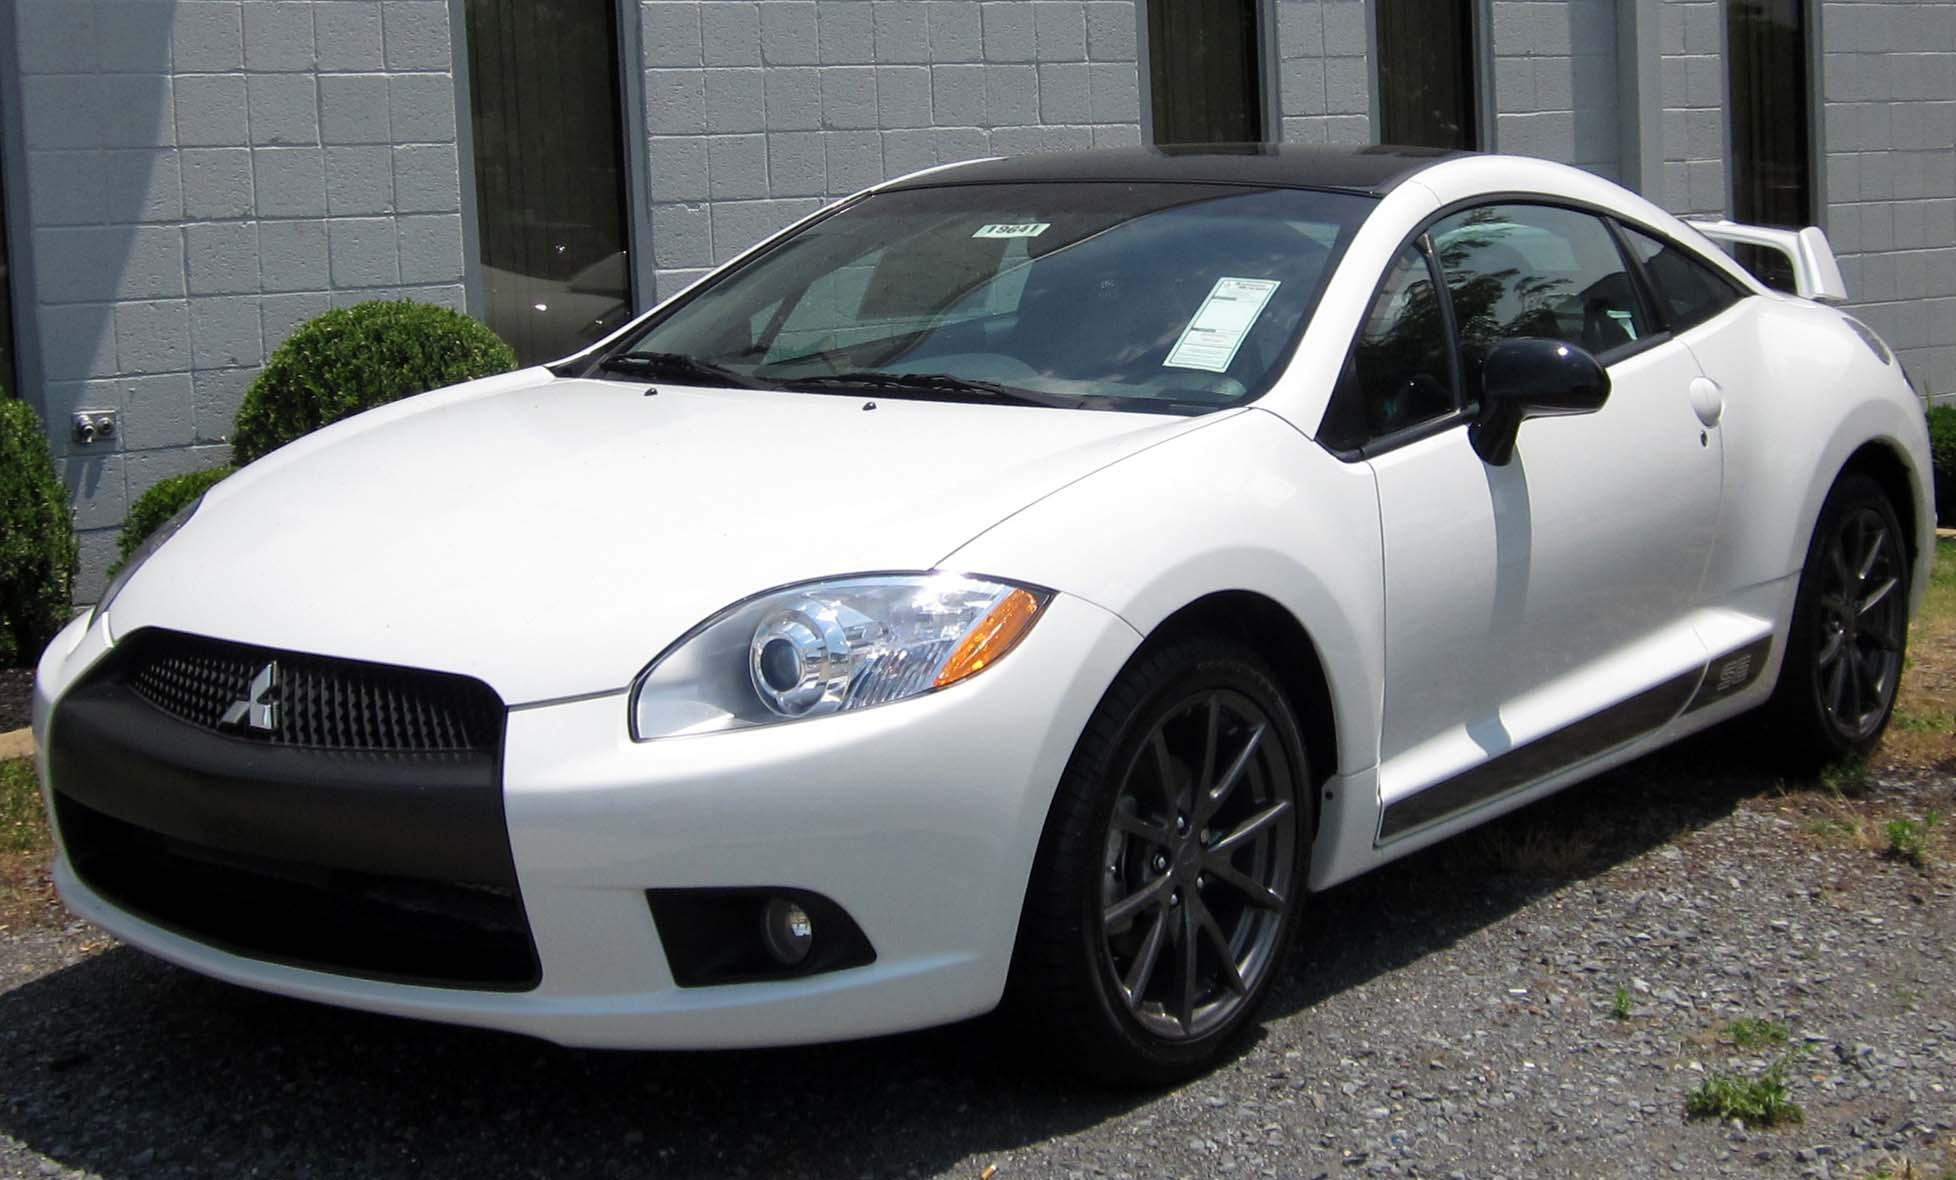 Mitsubishi Eclipse 2012 Silver Images & Pictures - Becuo